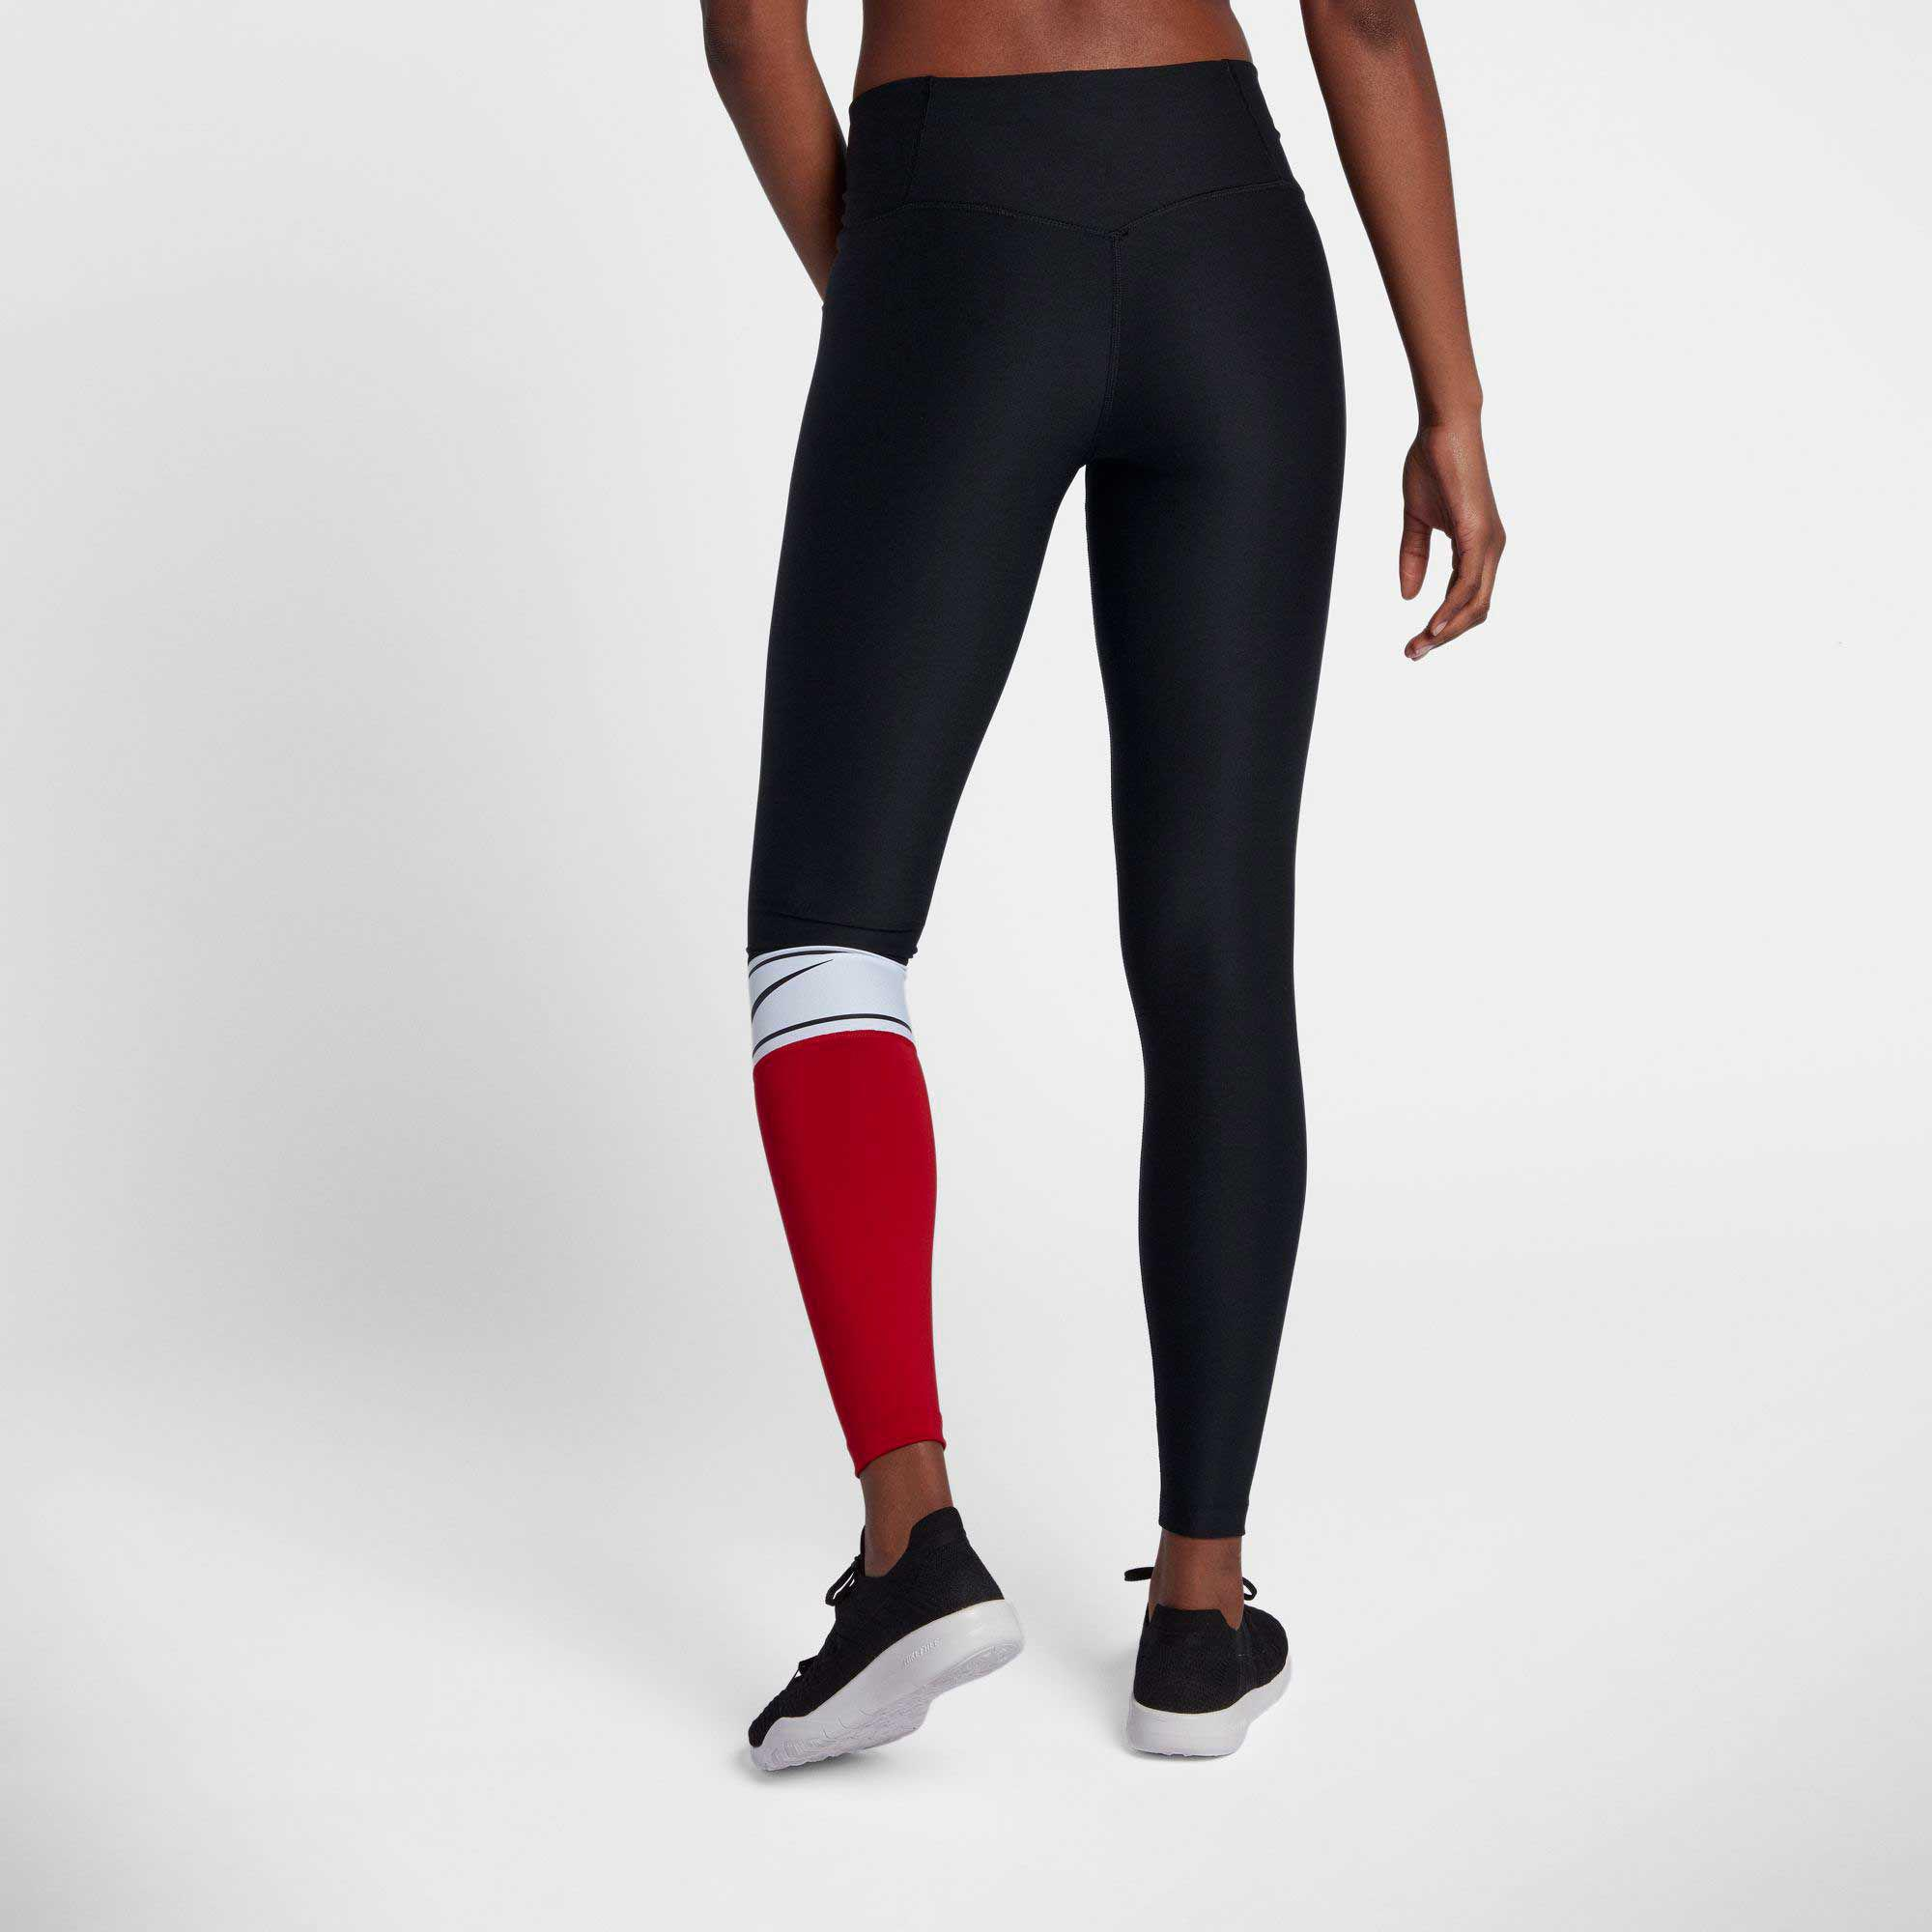 2220035fc0070 Nike Power Colorblock Training Tights in Black - Lyst